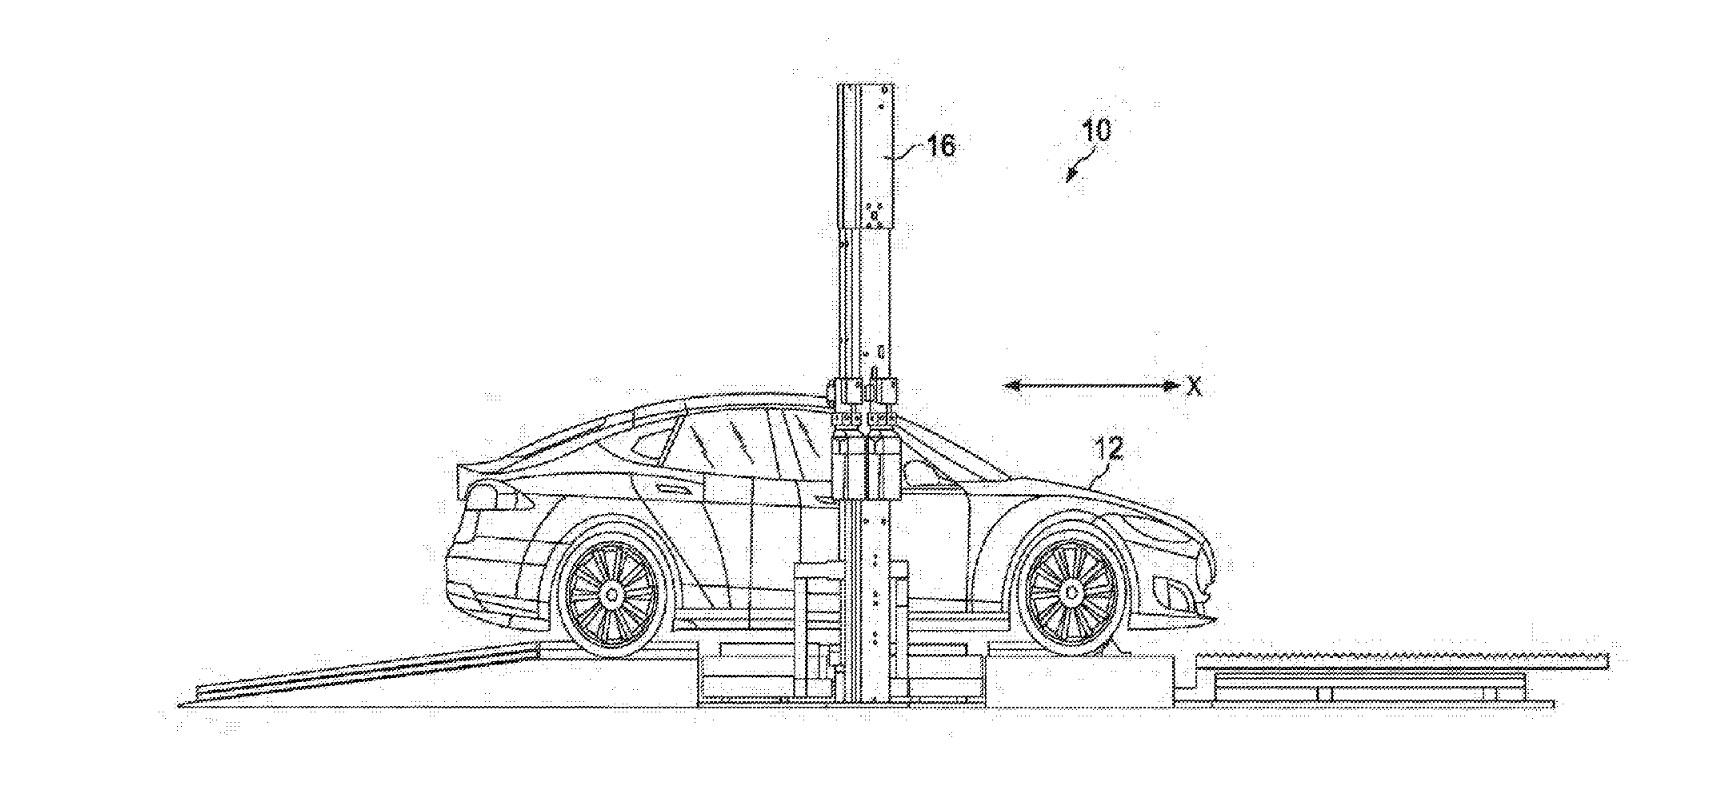 patent filing suggests tesla still interested in battery